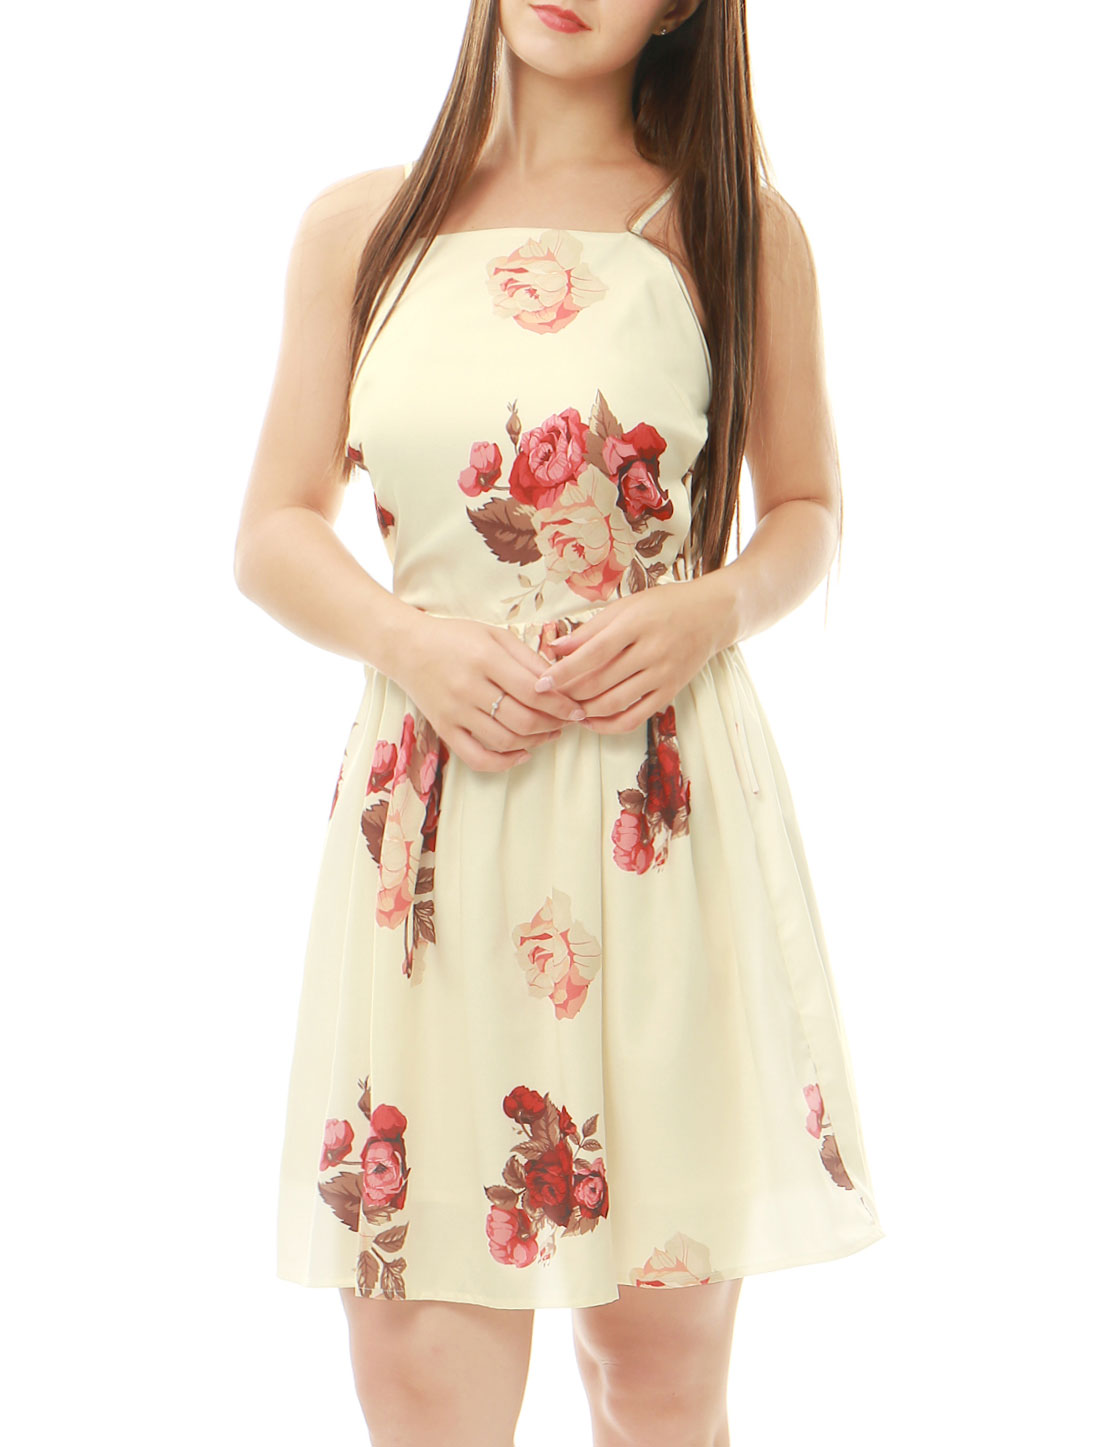 Women Floral Prints Sleeveless Tie Side A Line Dress Beige XL